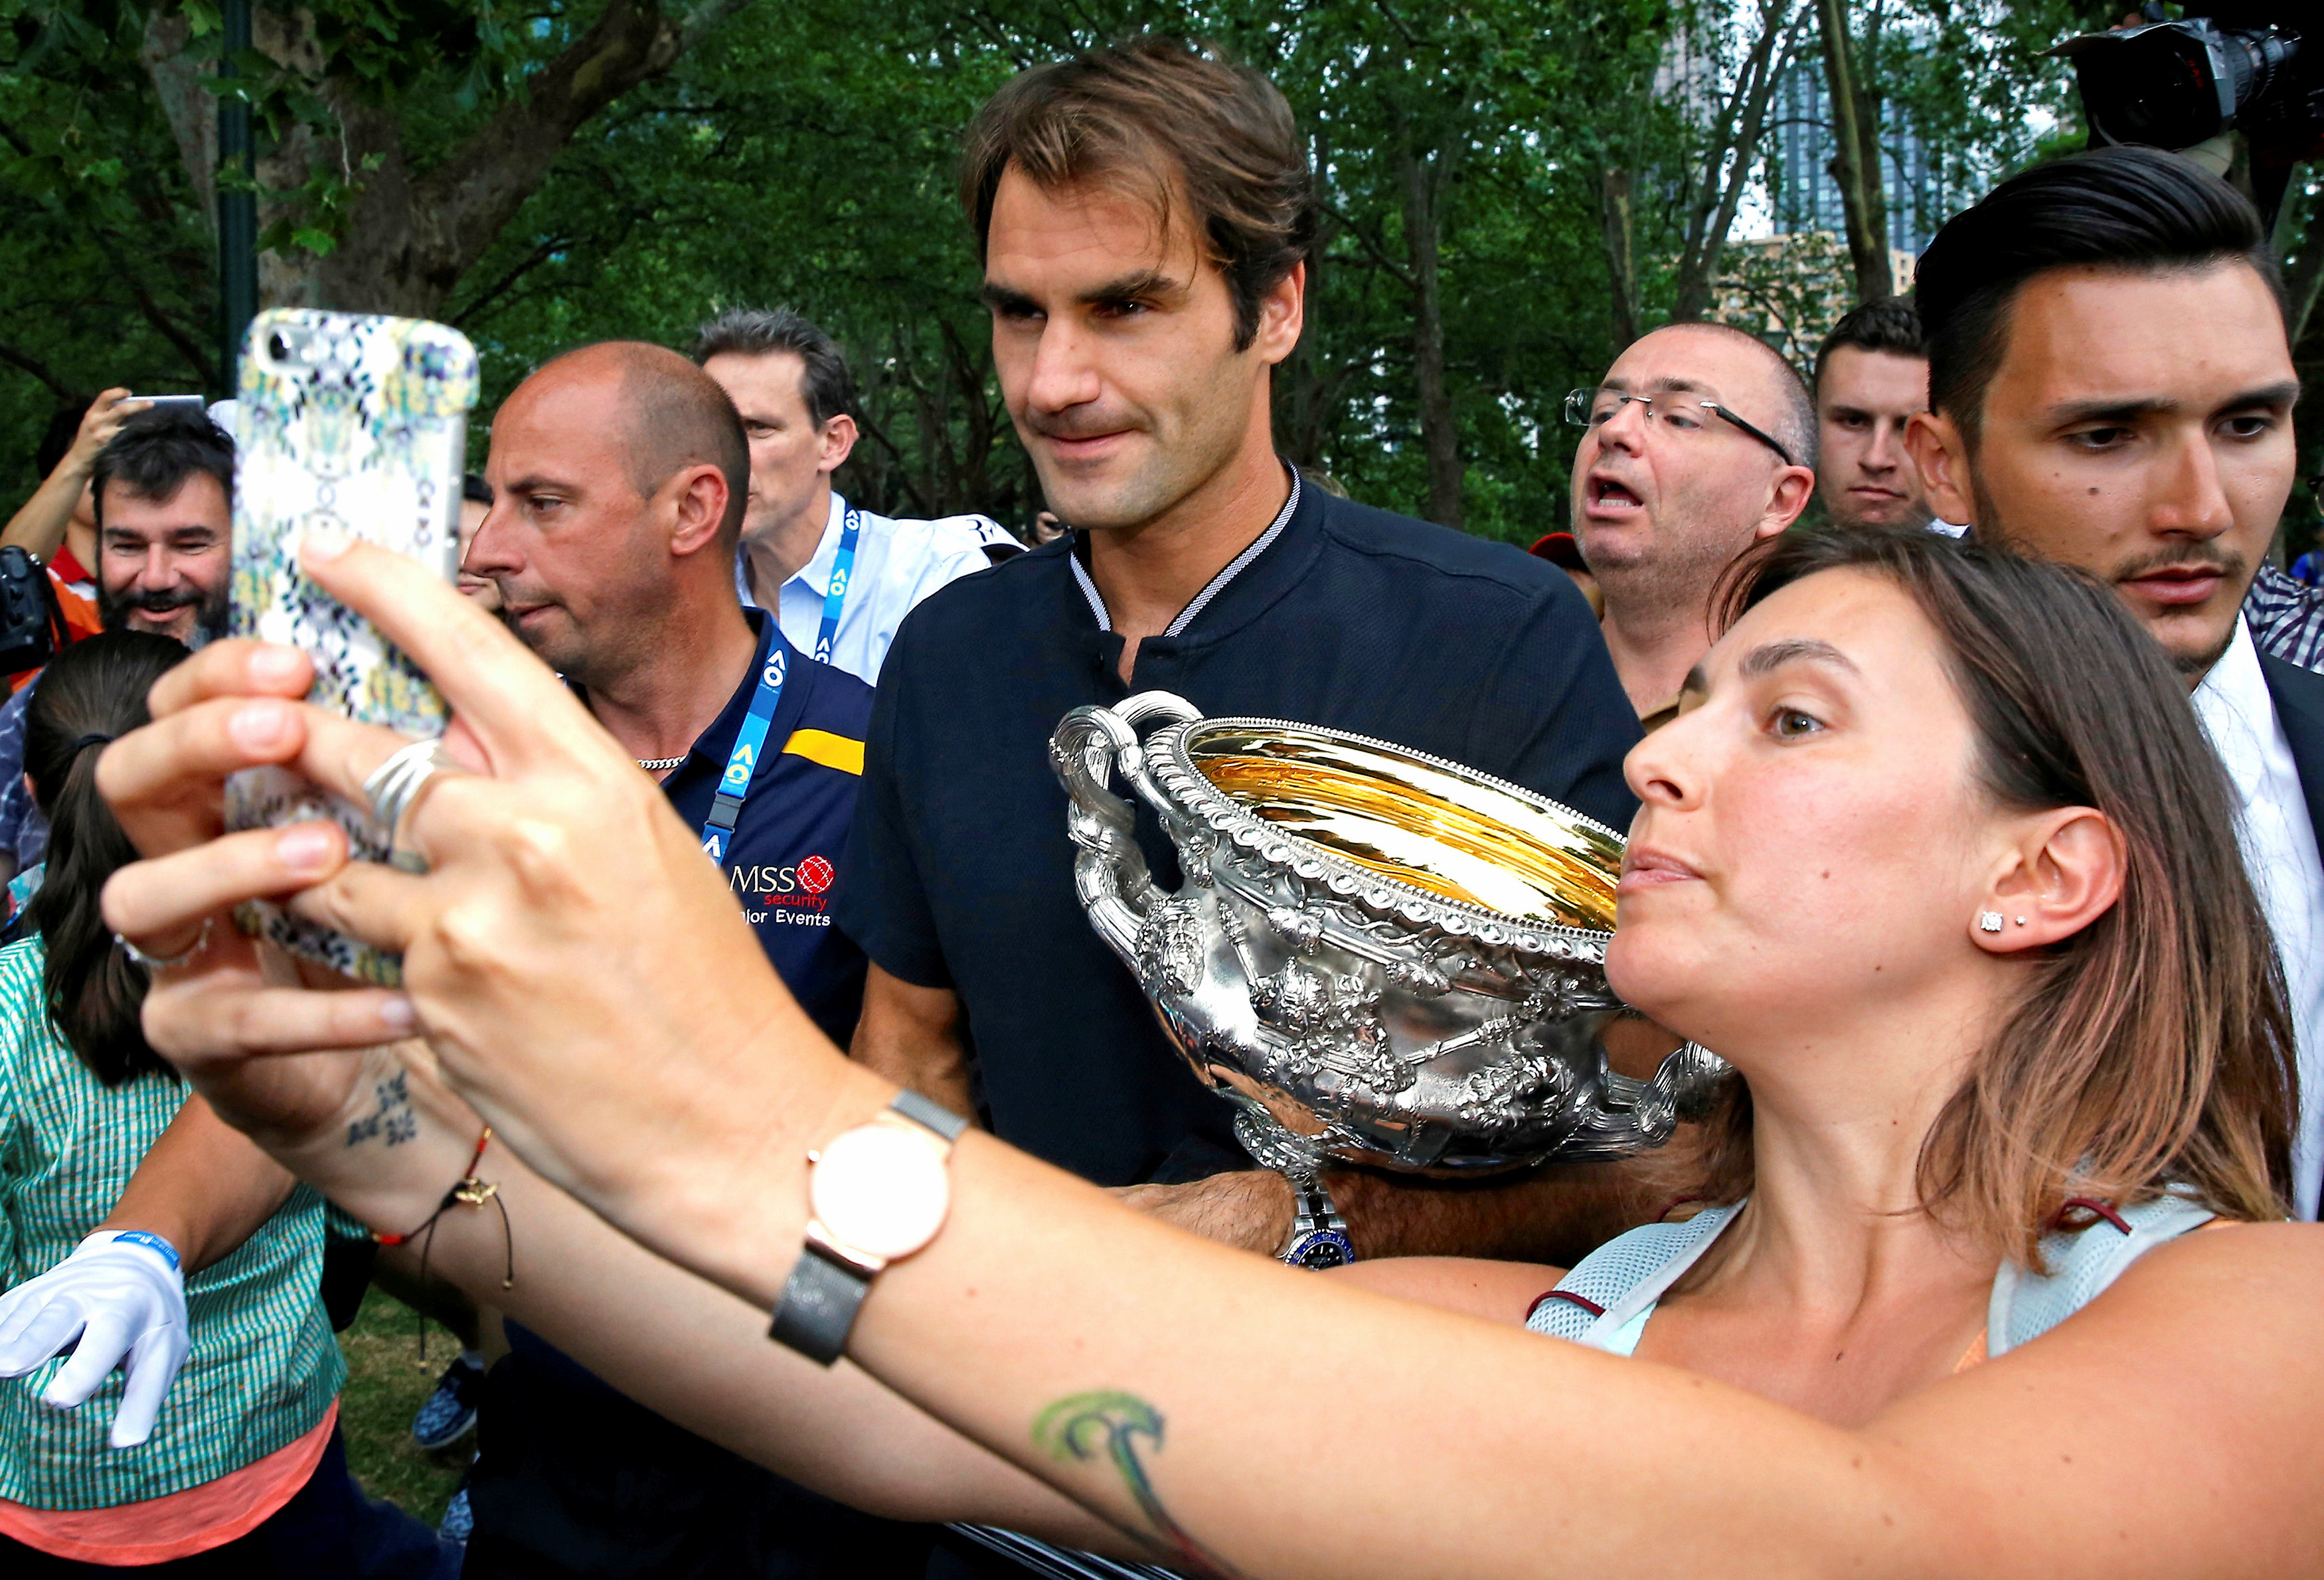 A woman takes a selfie with Switzerland's Roger Federer as he holds the trophy during a photo call the morning after he won the Men's singles final at the Australian Open tennis tournament in Melbourne, Australia, January 30, 2017. REUTERS/Issei Kato